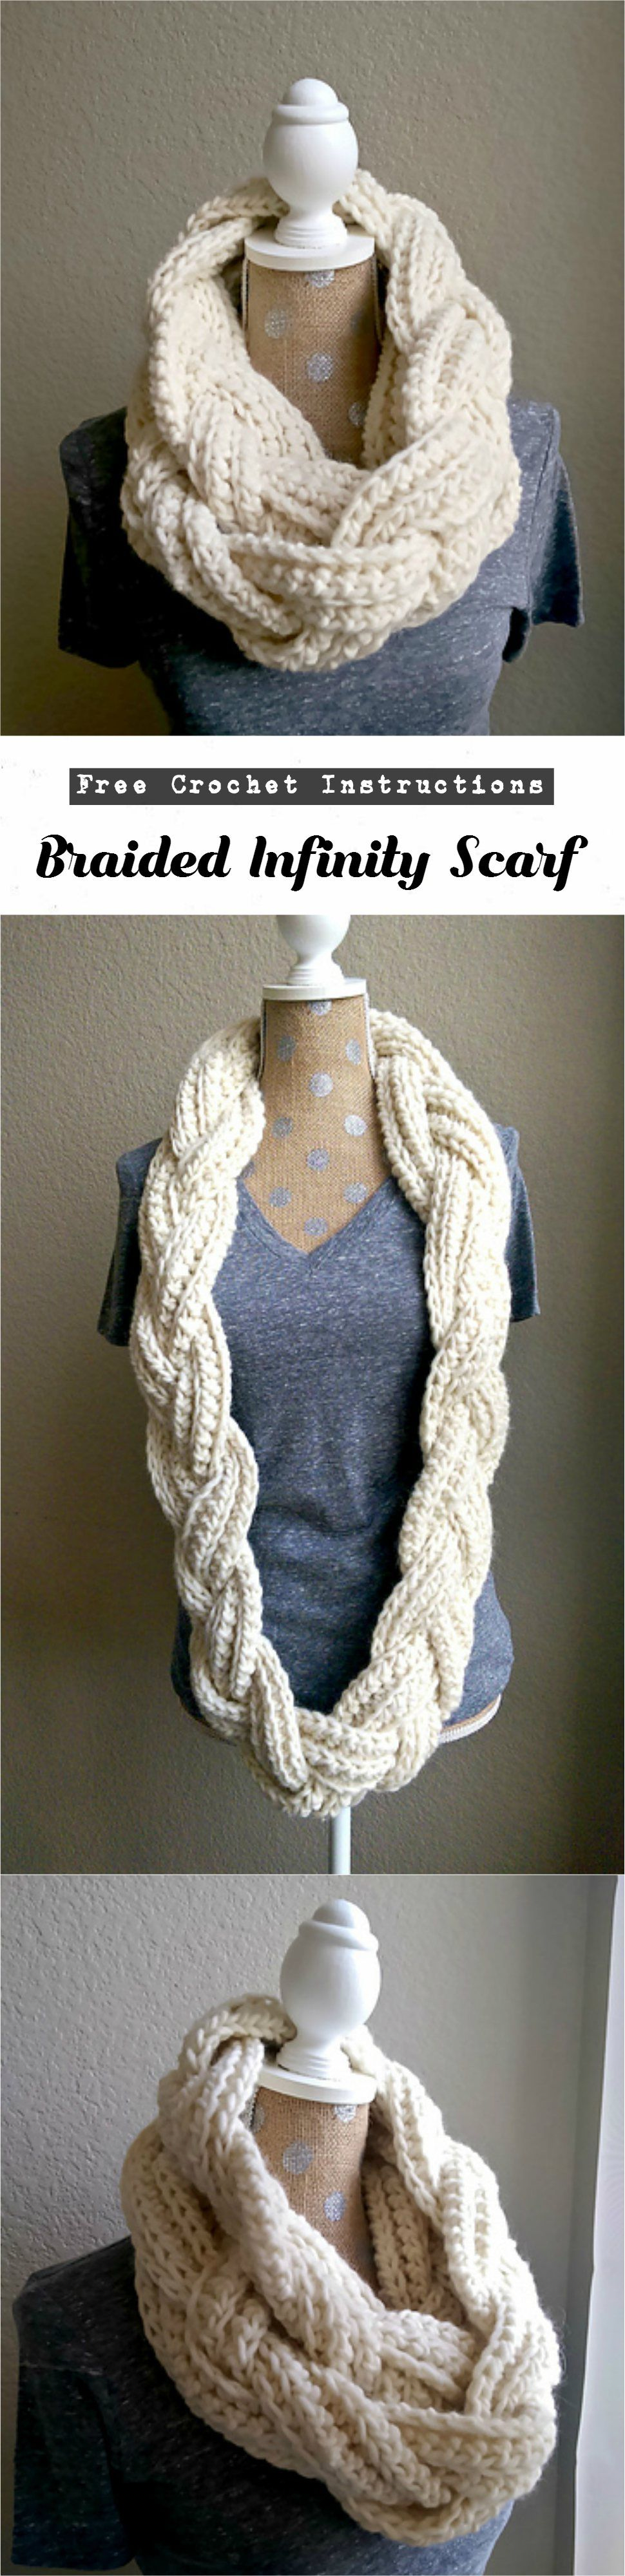 Crochet Braided Infinity Scarf | Projects to Try | Pinterest ...